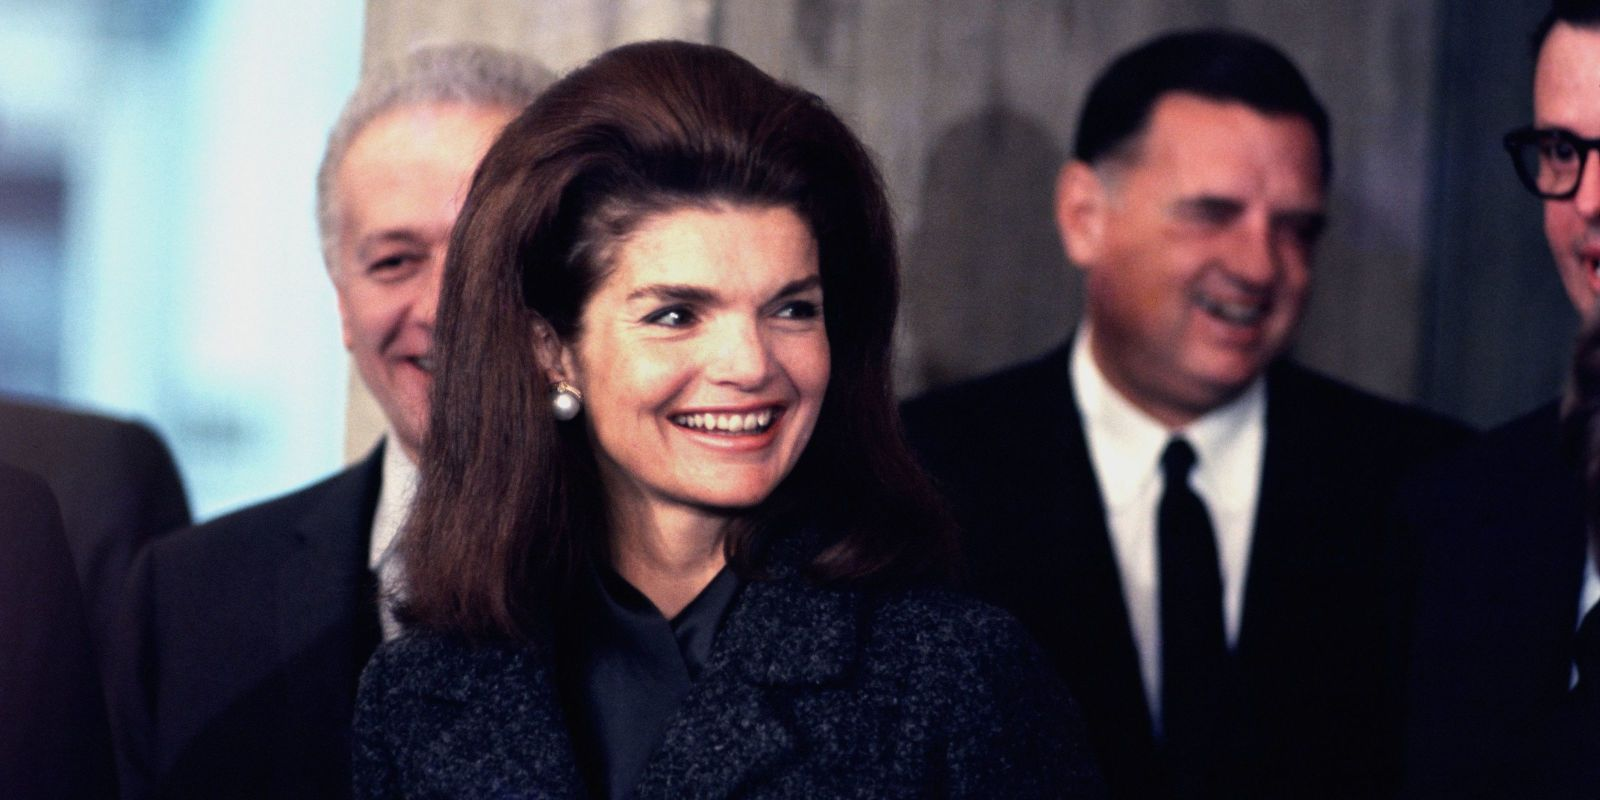 Jackie Kennedy Rejected a Marriage Proposal From One of JFK's Closest Friends  http://www.elle.com/culture/news/a42904/jacqueline-kennedy-david-ormsby-gore-letter-auction/